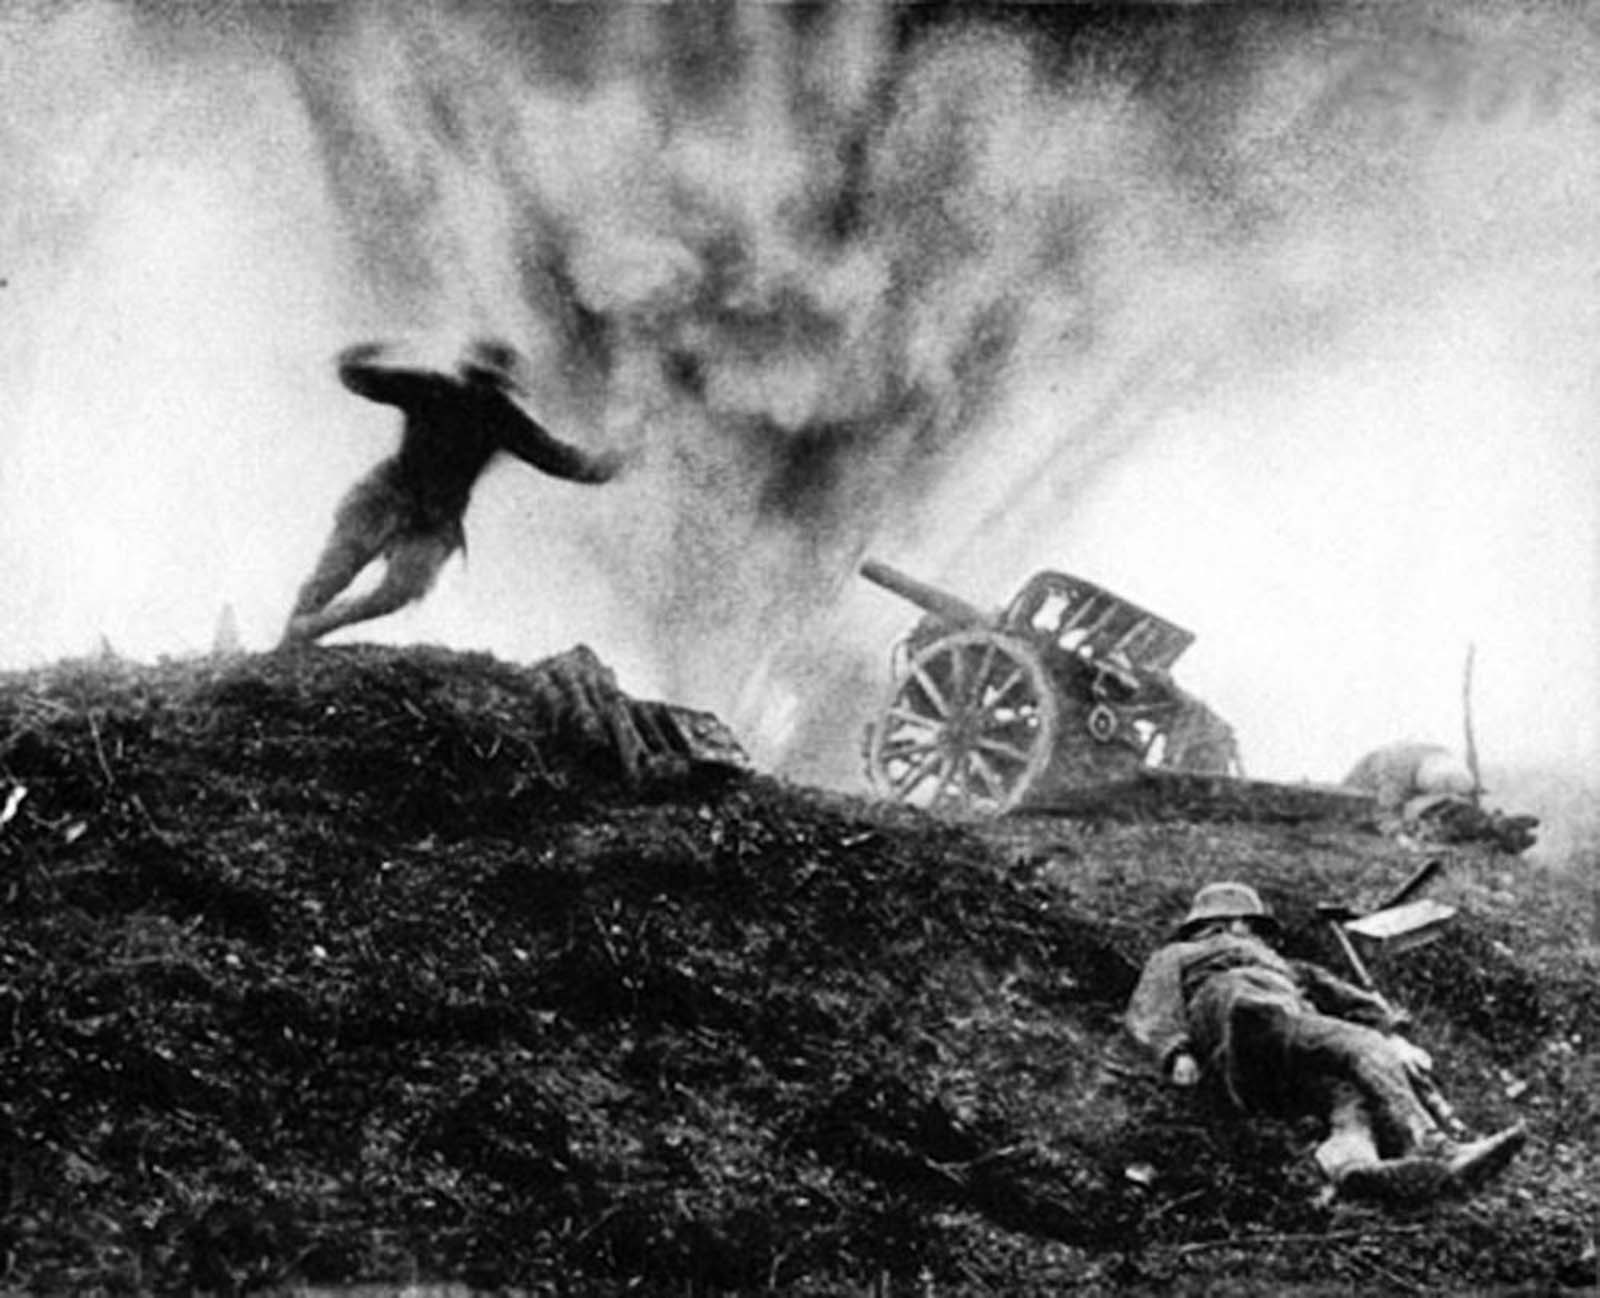 German soldier dives for cover as shell explodes. Western Front, 1917.